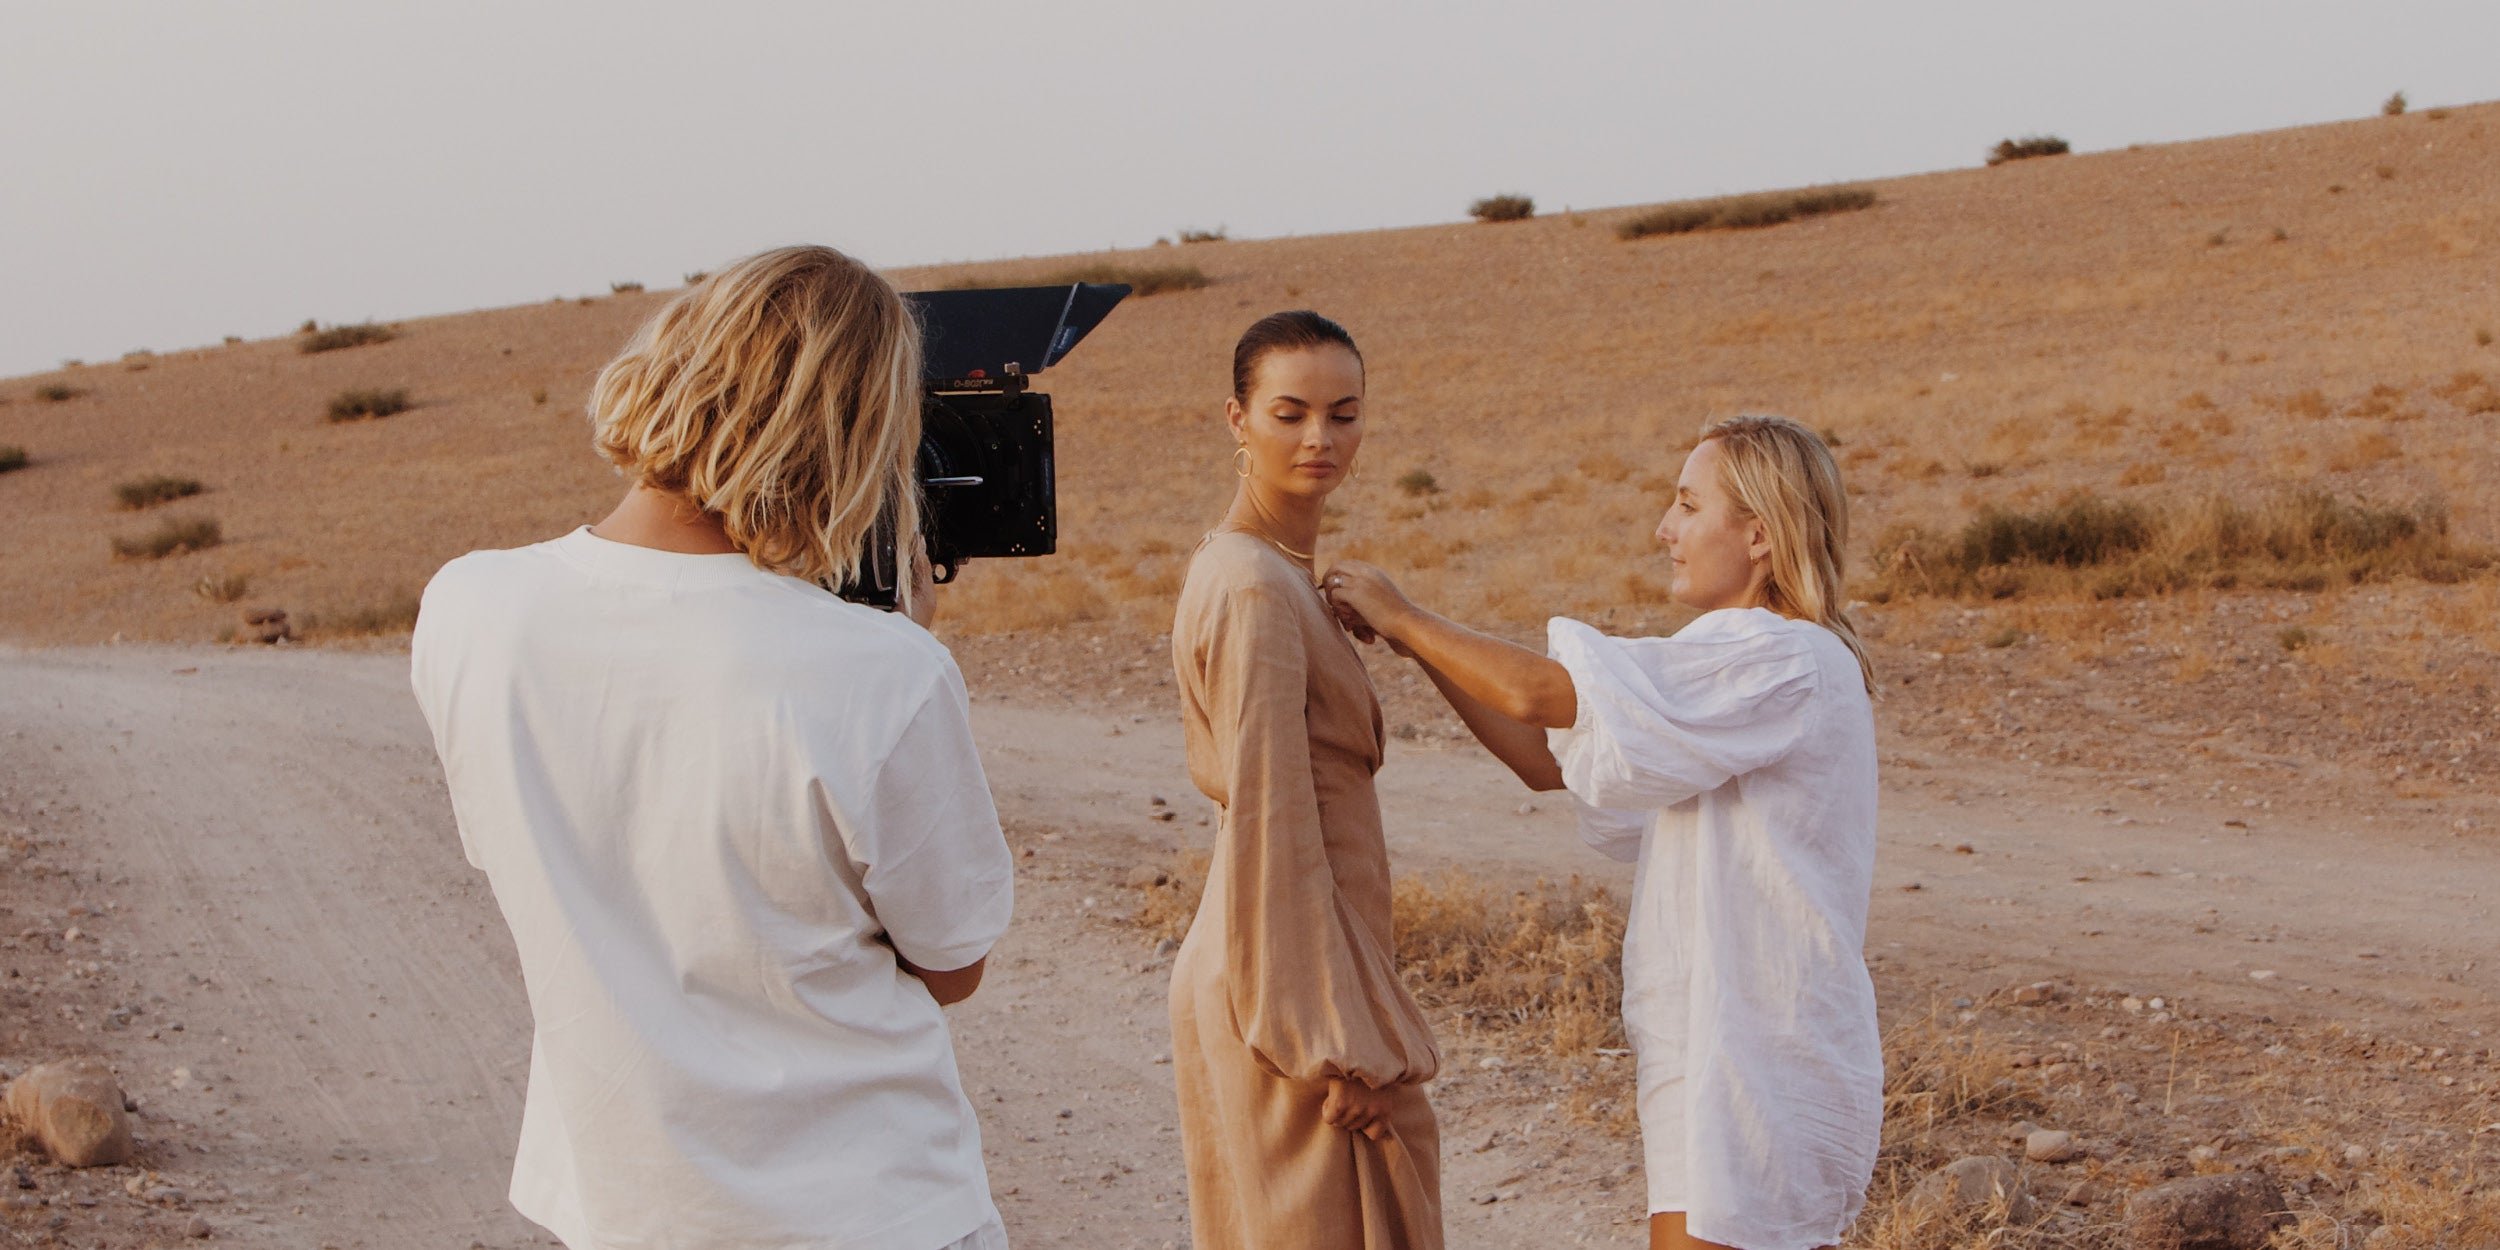 Behind The Scenes in Morocco: She Collection